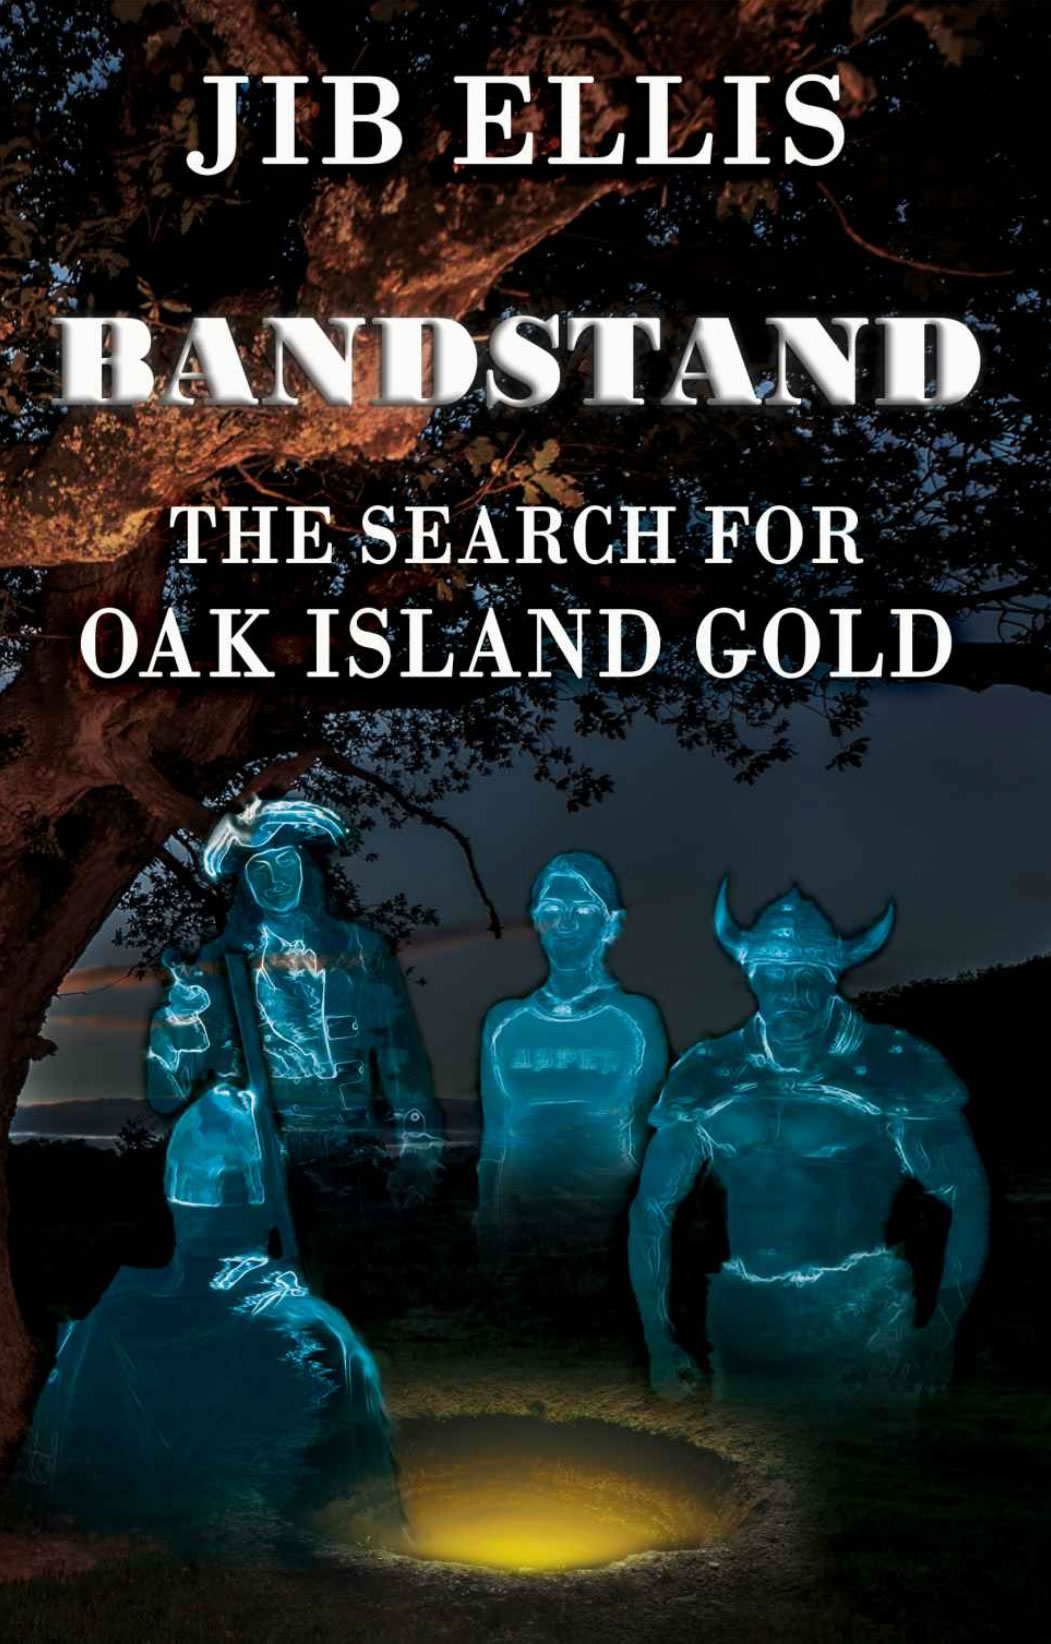 Bandstand, The Search for Oak Island Gold